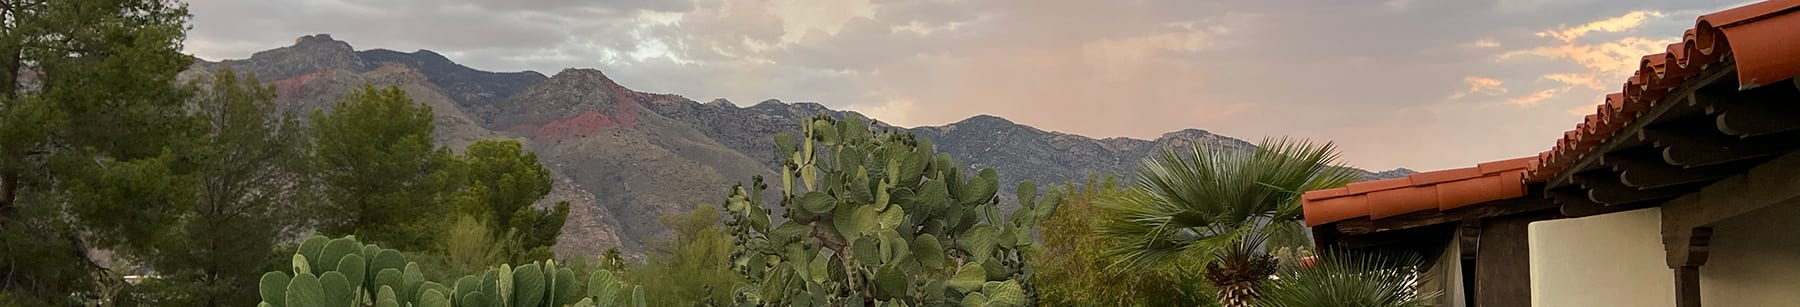 Tucson's Catalina mountains with rooftop and shrubs